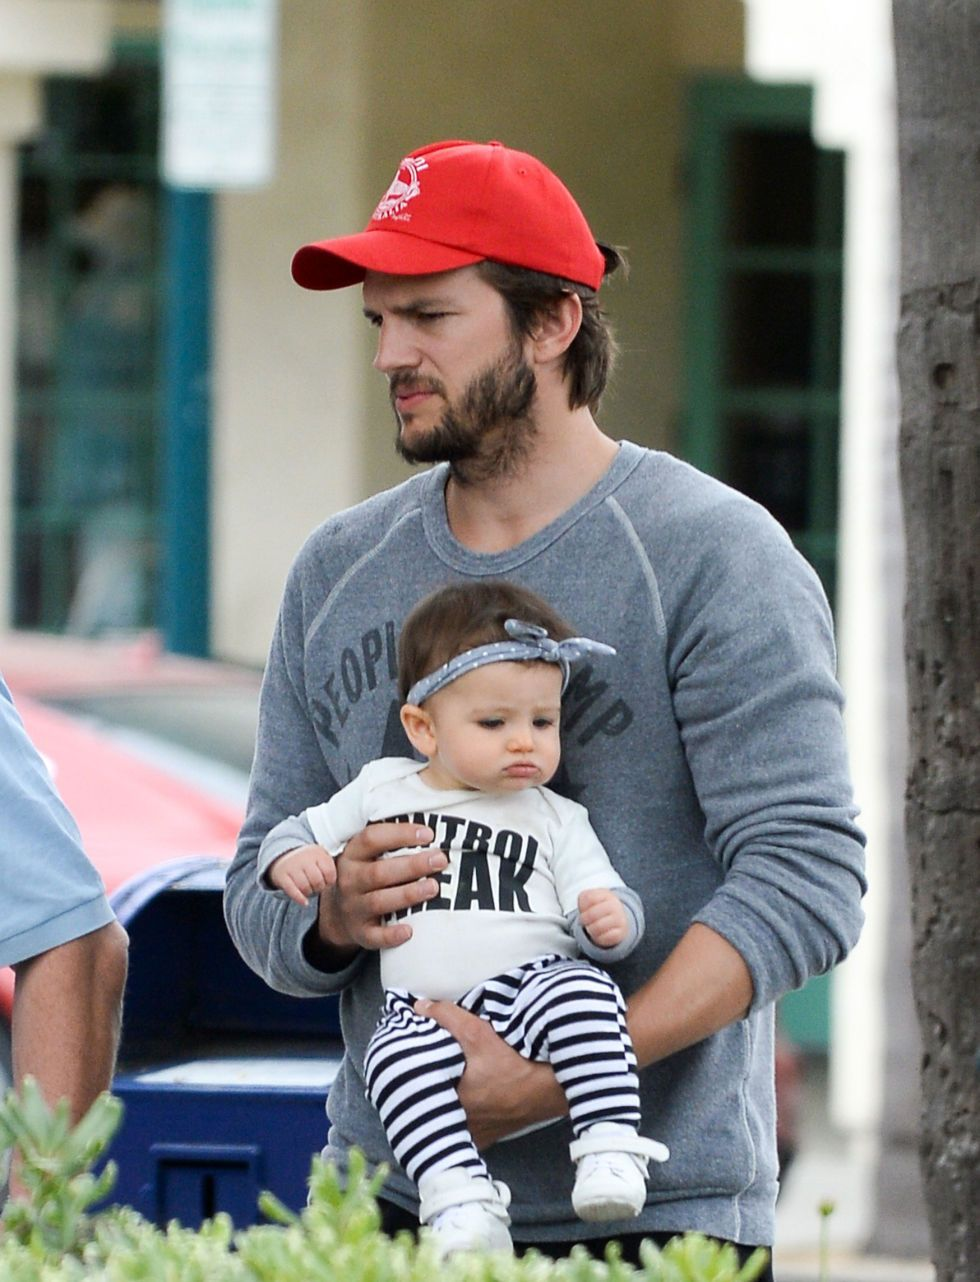 Ashton Kutcher's Daughter Makes the Most Adorable Fashion Statement